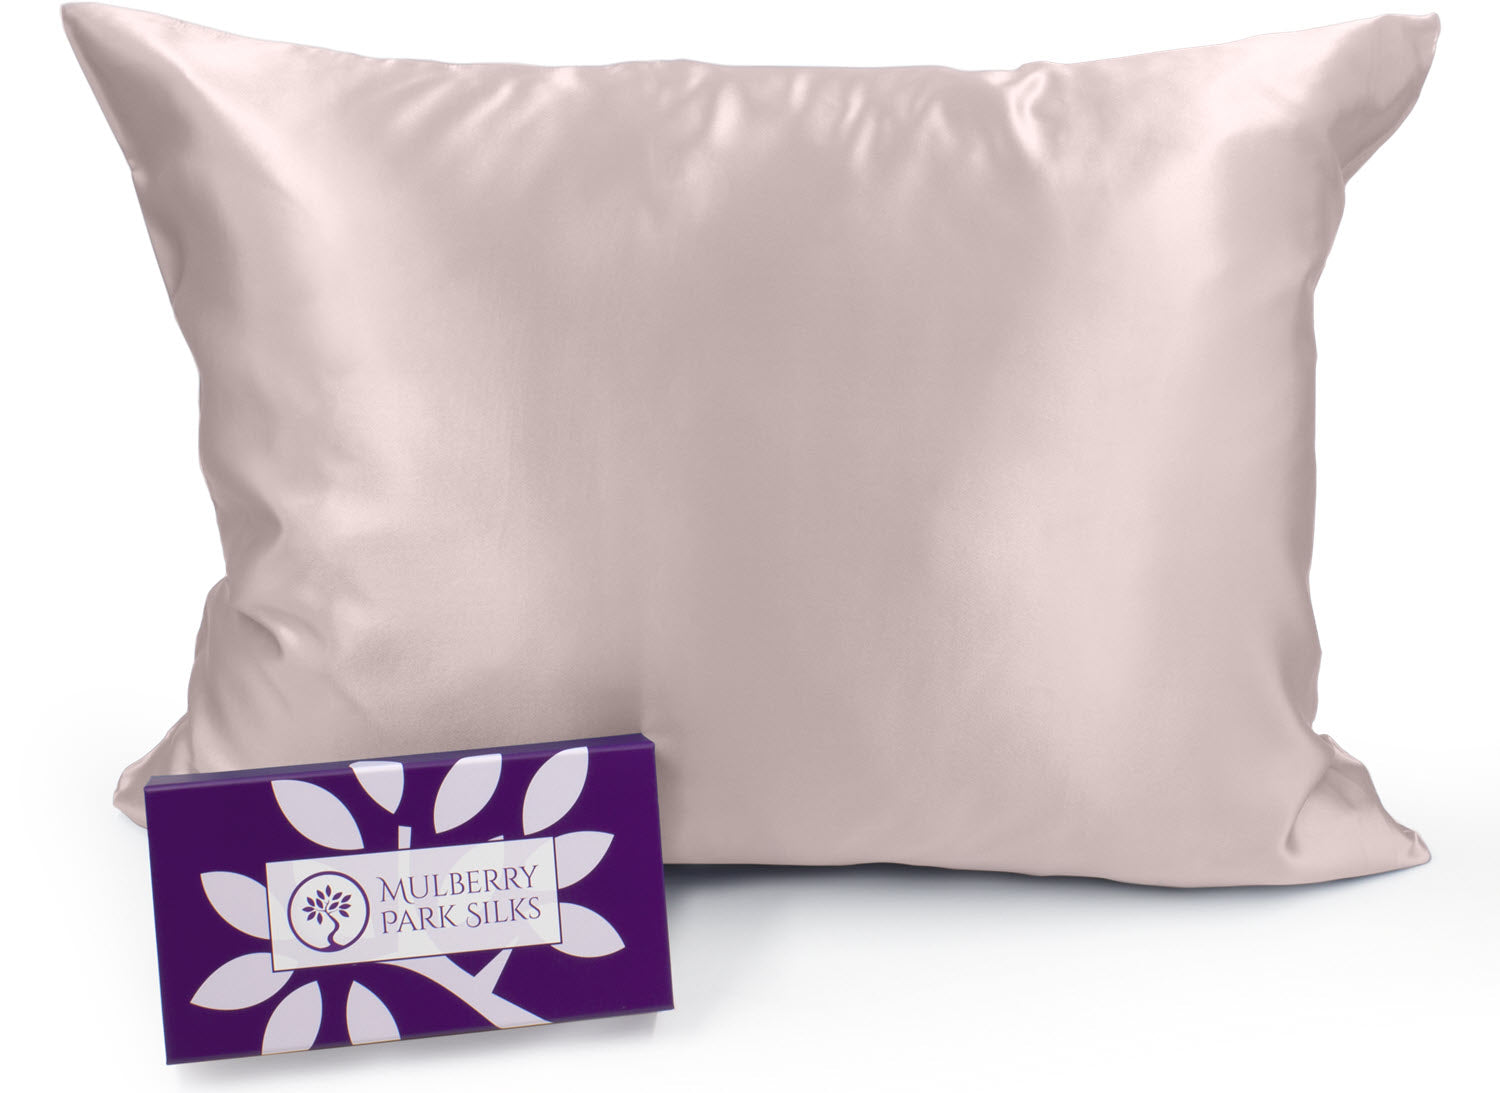 22 momme silk pillowcase with gift box